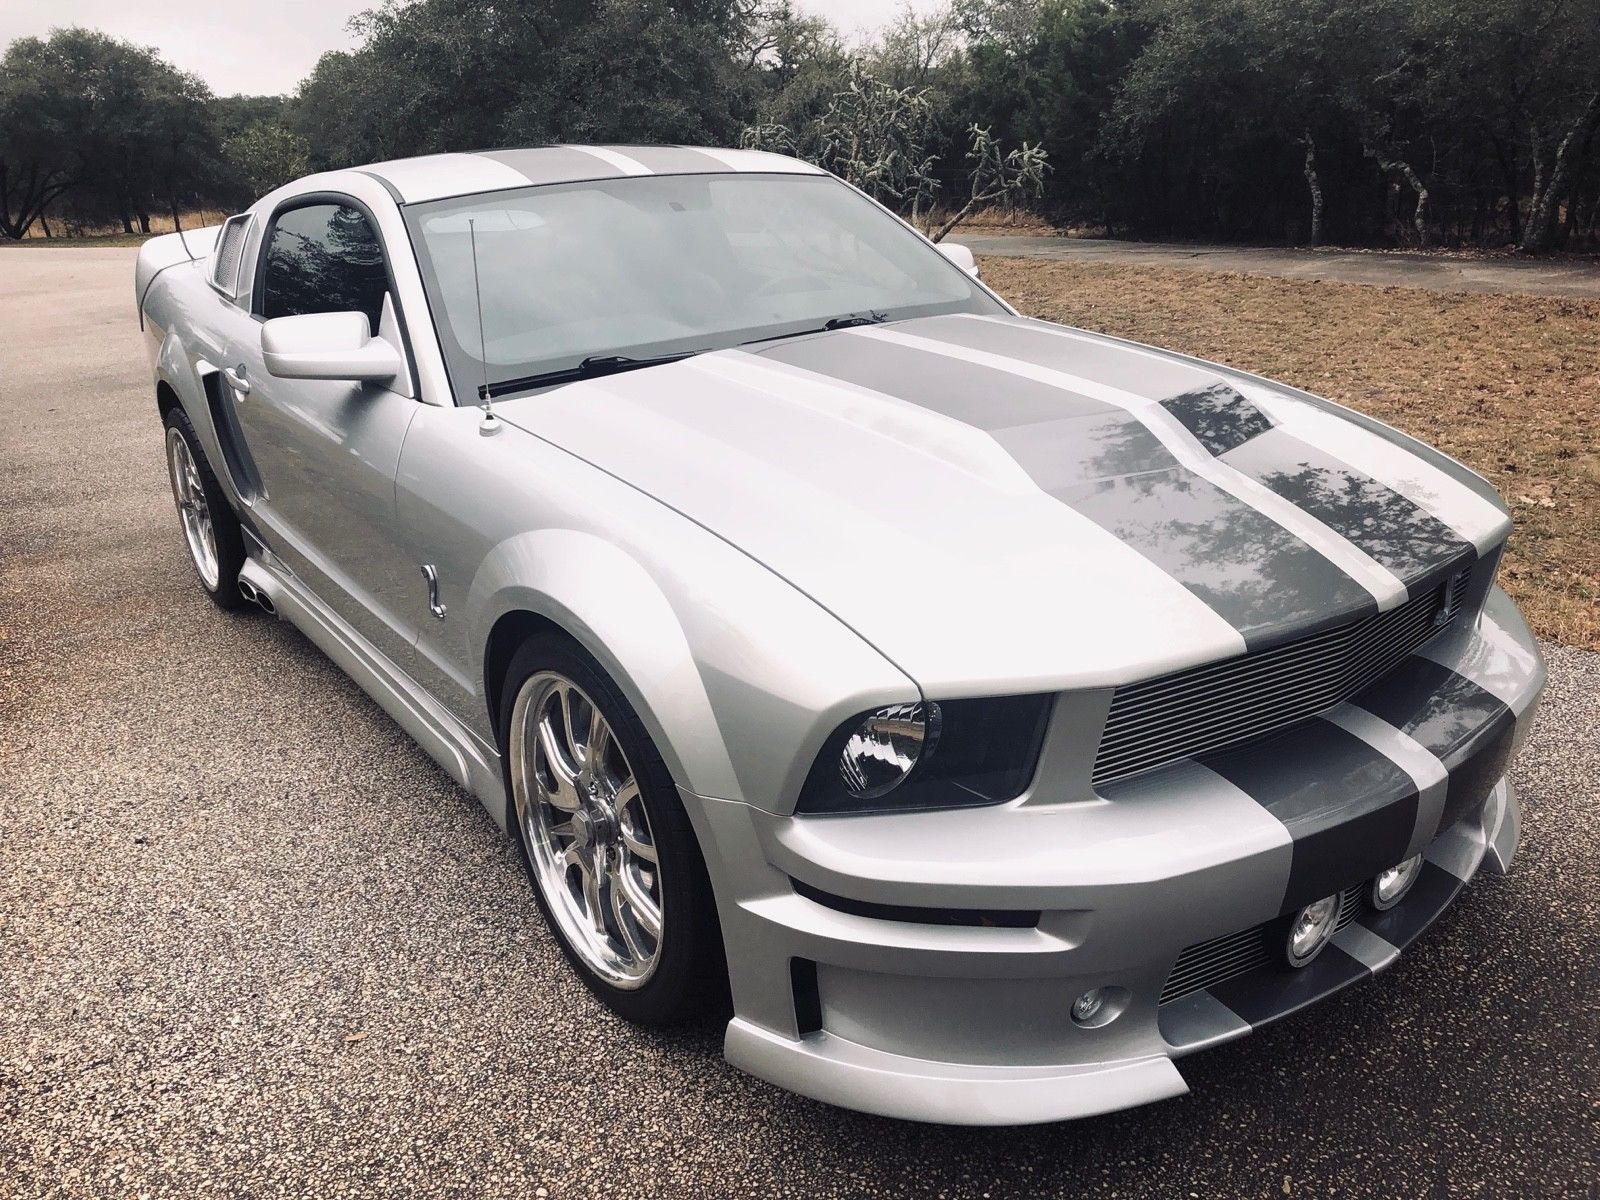 Mustang Gt Supercharger >> Great 2007 Ford Mustang Eleanor 2007 Mustang Gt Eleanor